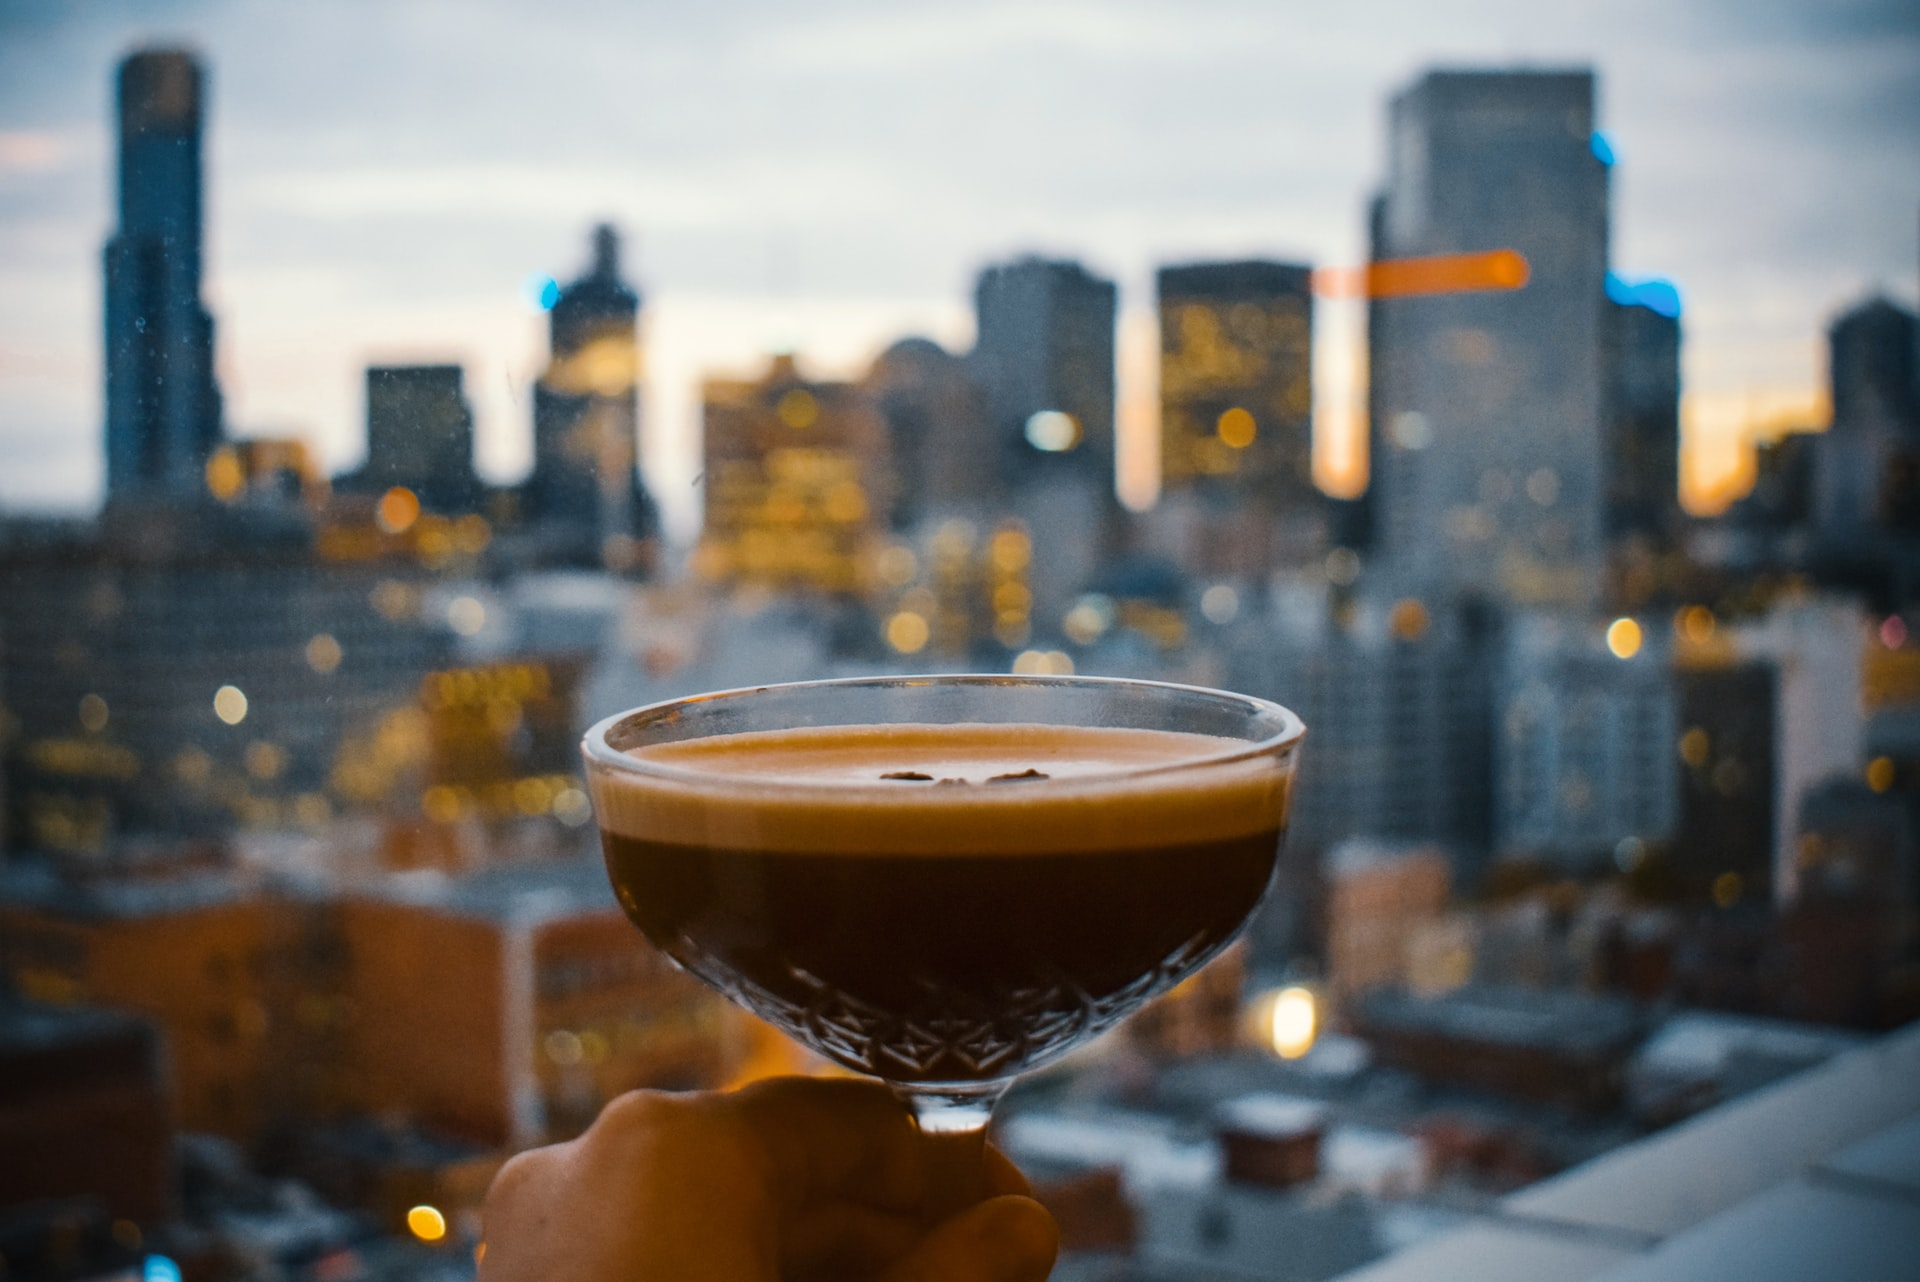 espresso martini in front of the Melbourne skyline